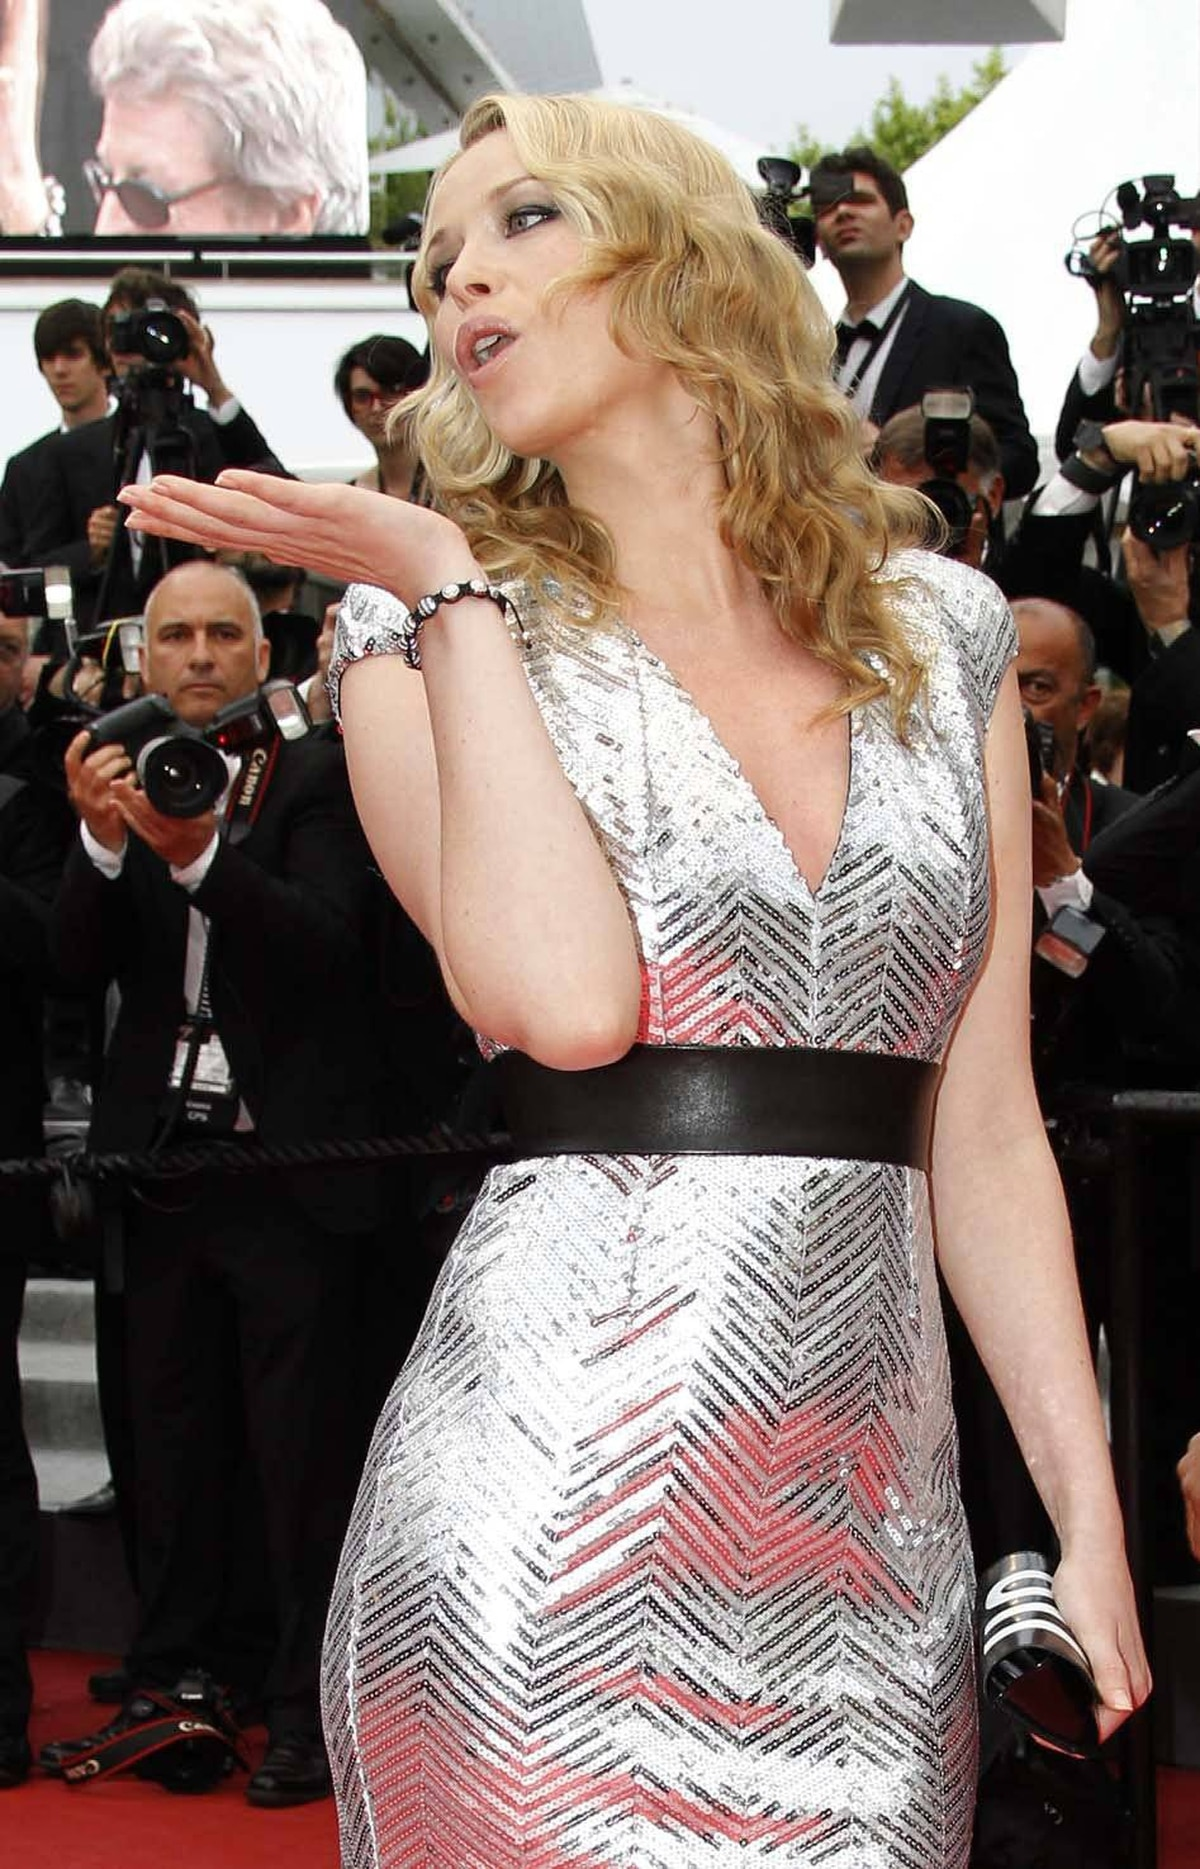 """Actress Kiera Chaplin blows a kiss on the red carpet before the screening of """"La Conquete"""" at the Cannes Film Festival in Cannes, France, on Wednesday."""